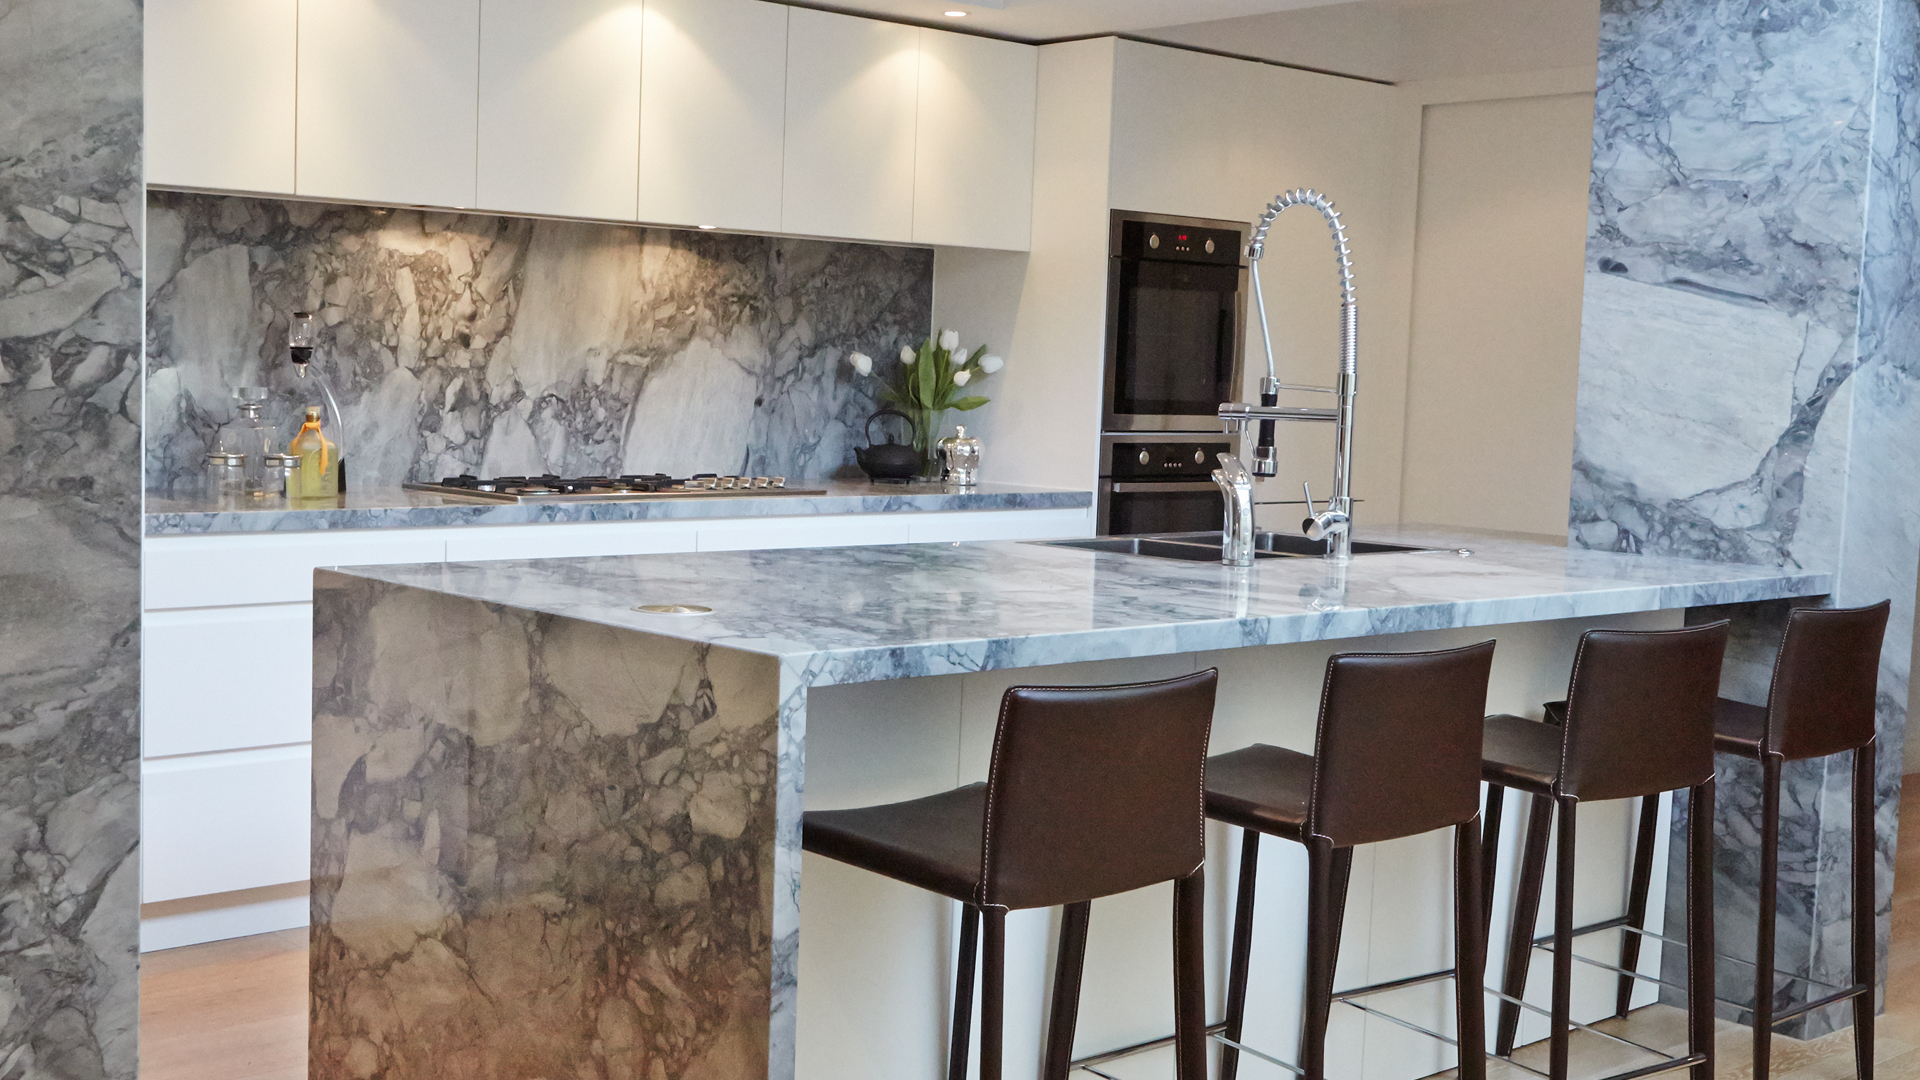 REFRESHINGLY DIFFERENT KITCHENS IN EVERY SENSE